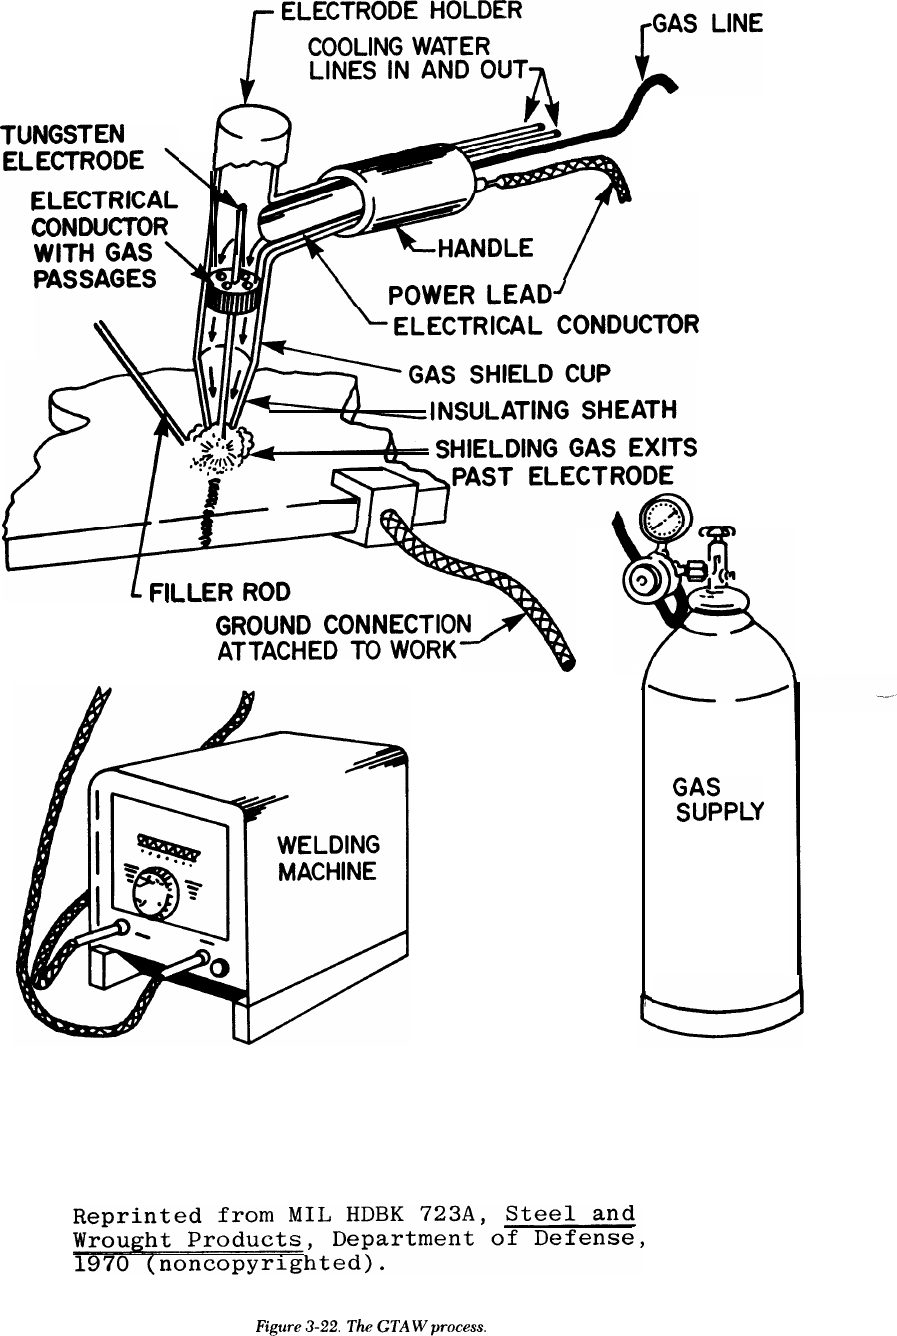 Uoe7240 Welding Technical Manual Tm 5 805 7 Machine Block Diagram